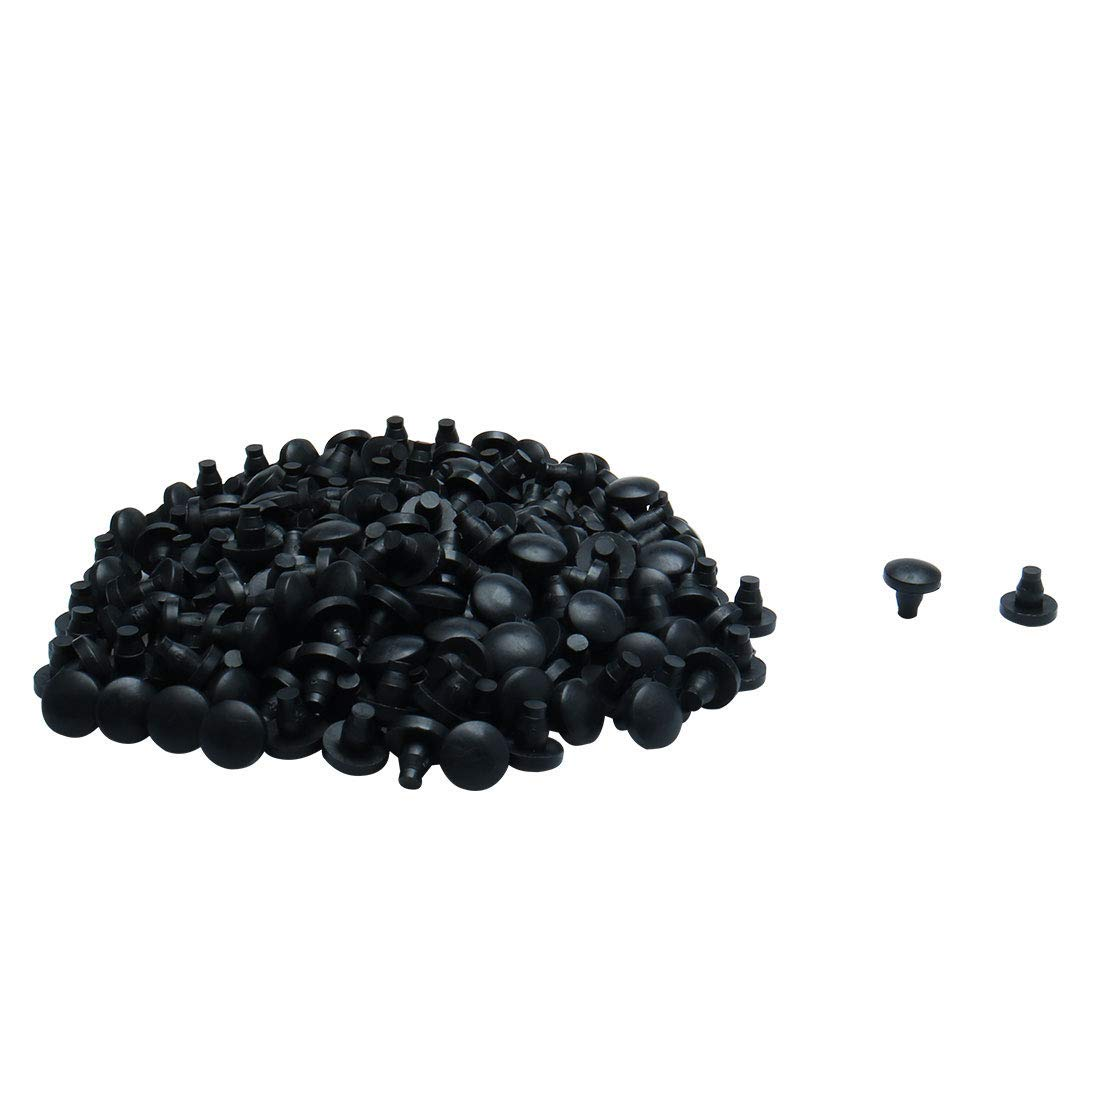 uxcell 200pcs 7mm Black Stem Bumpers Glide, Patio Outdoor Furniture Feet Glass Table Cabinet Top Anti-collision Embedded